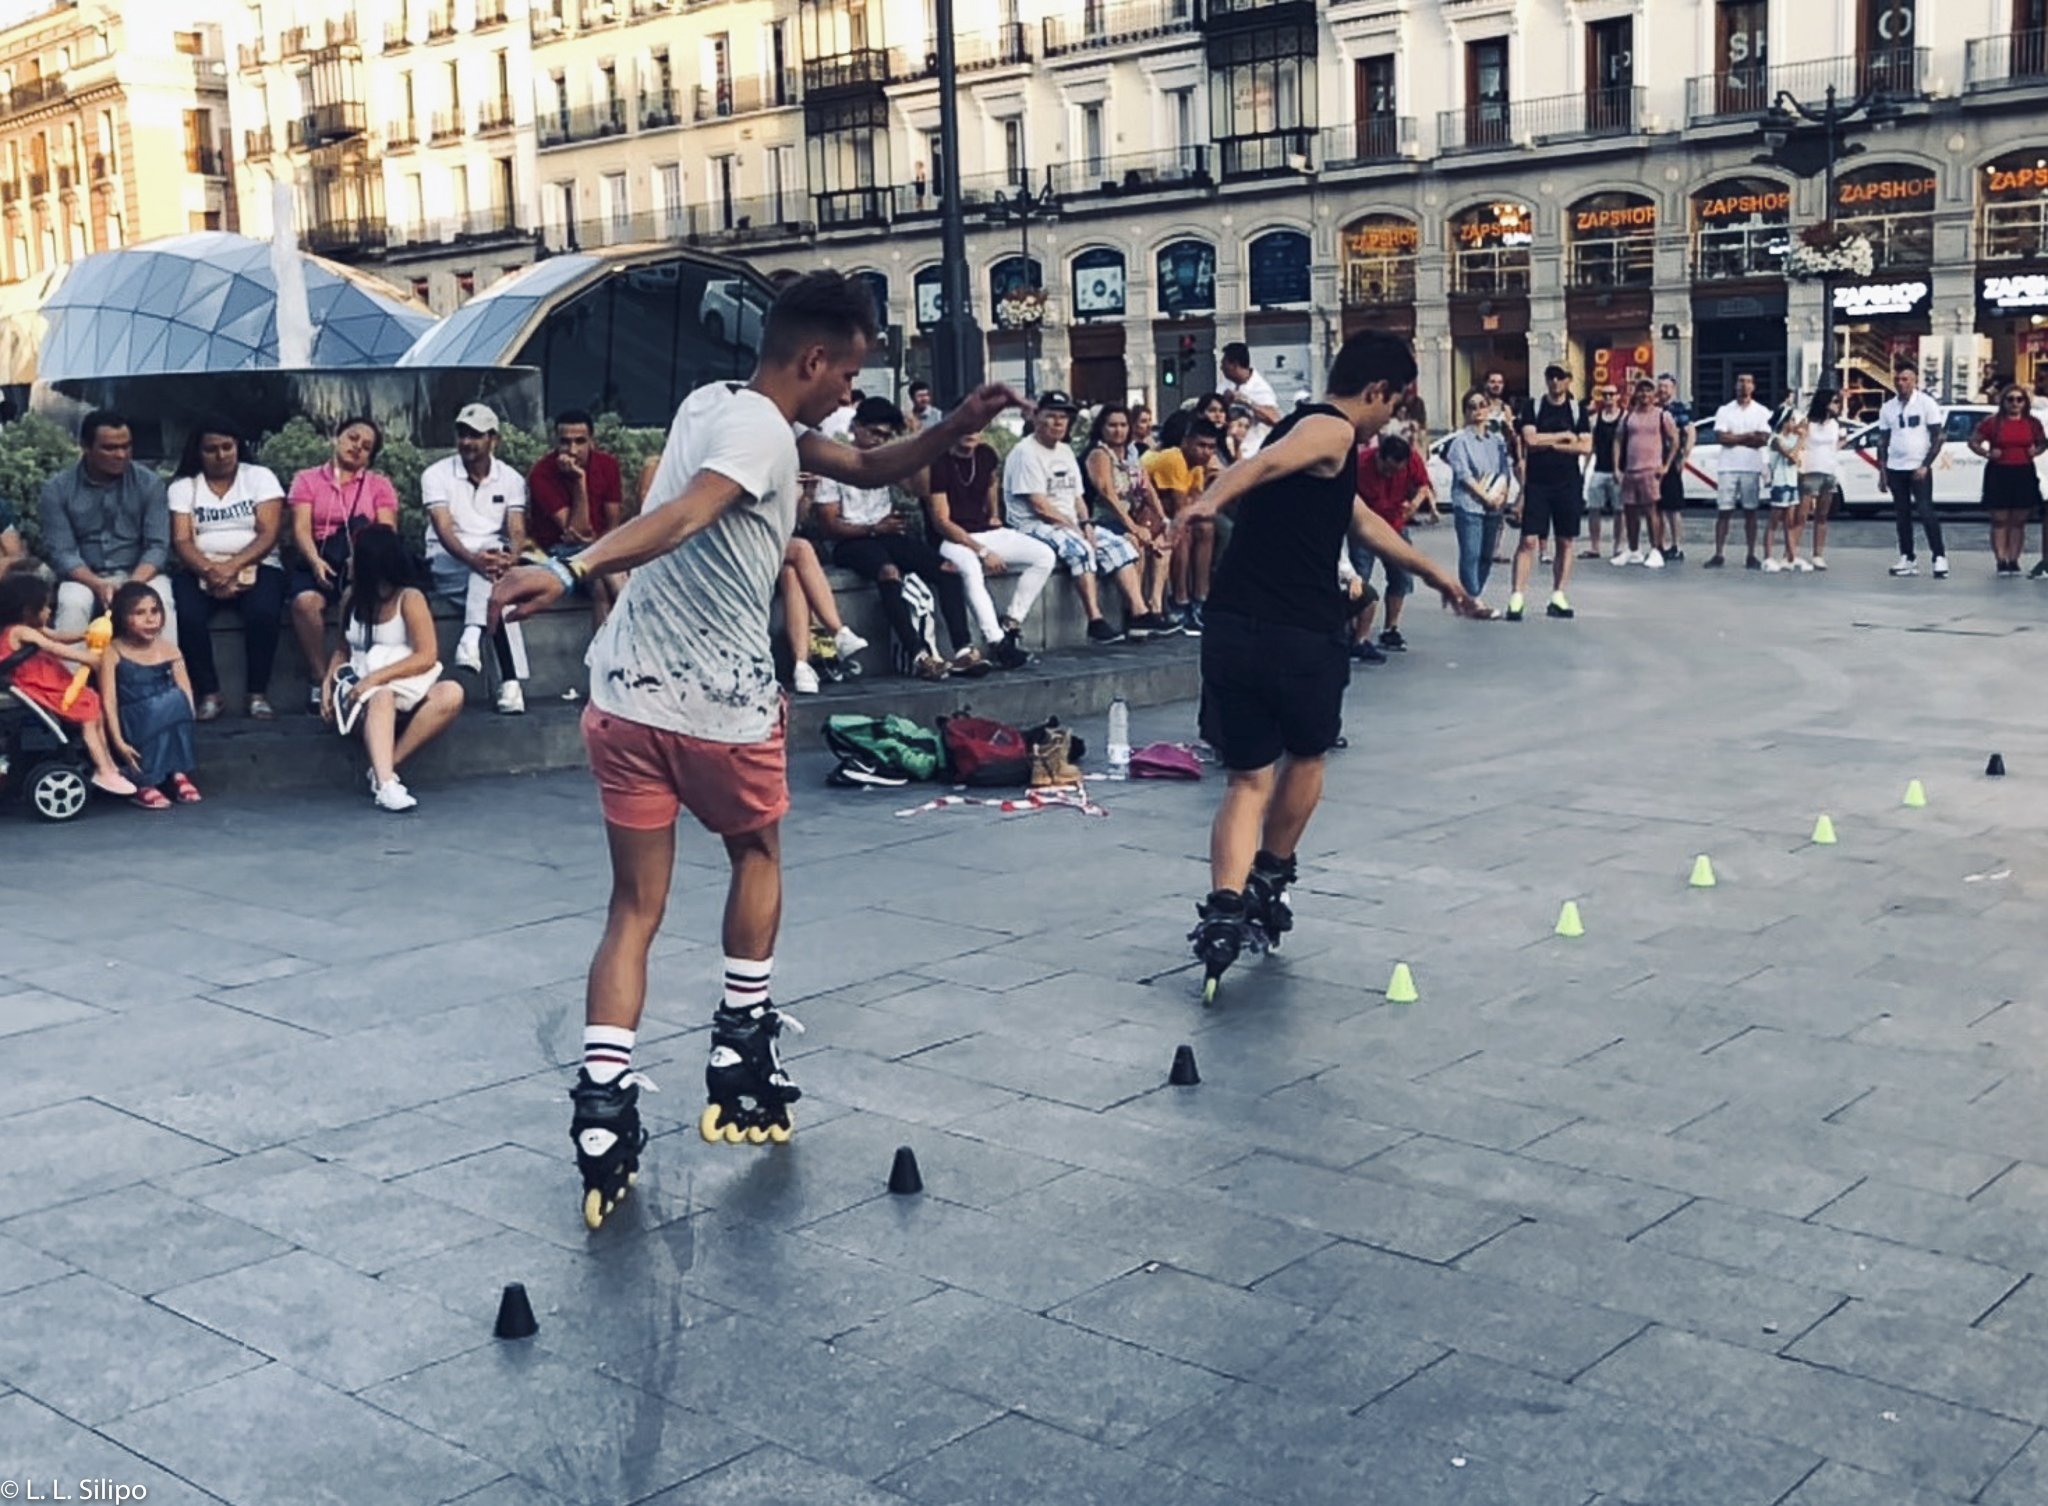 Madrid, Spain, Stunt, city, europe, iberia, motion, people, puerta del sol, roller, rollerbladers, rollerblading, spanish, sport, square, street